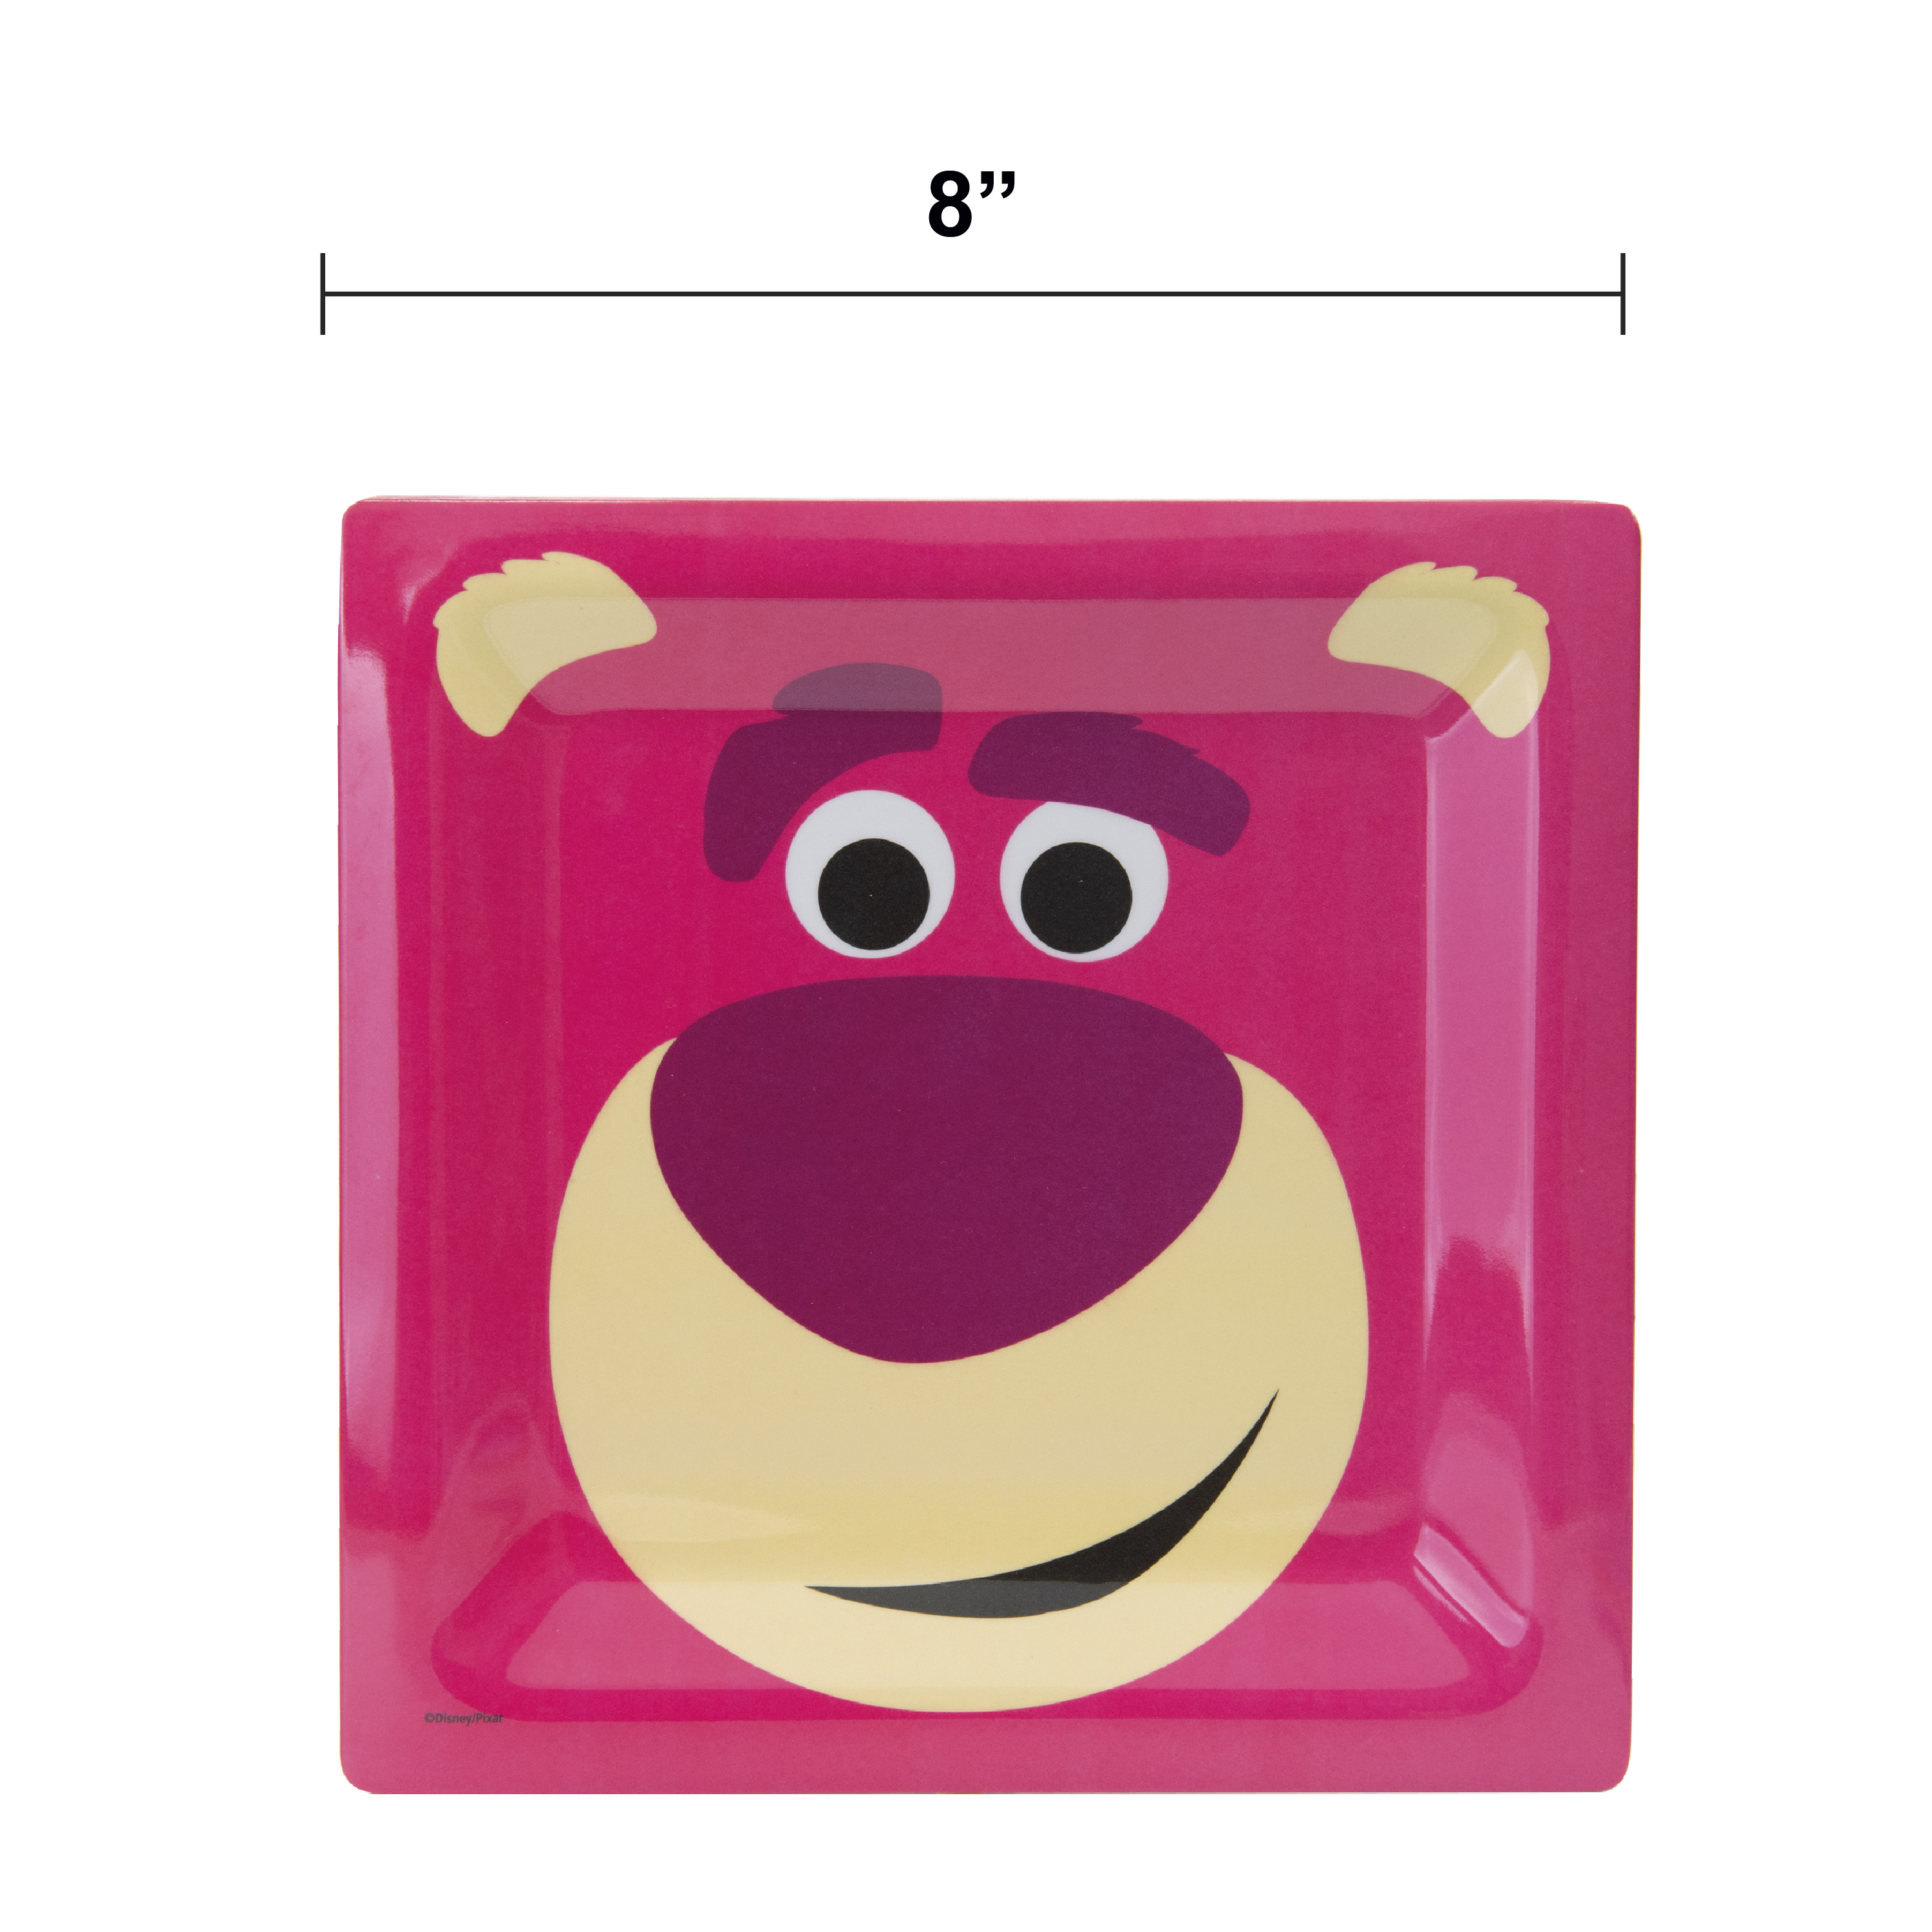 Disney and Pixar Toy Story 4 Plate and Bowl Set, Lotso, 2-piece set slideshow image 8